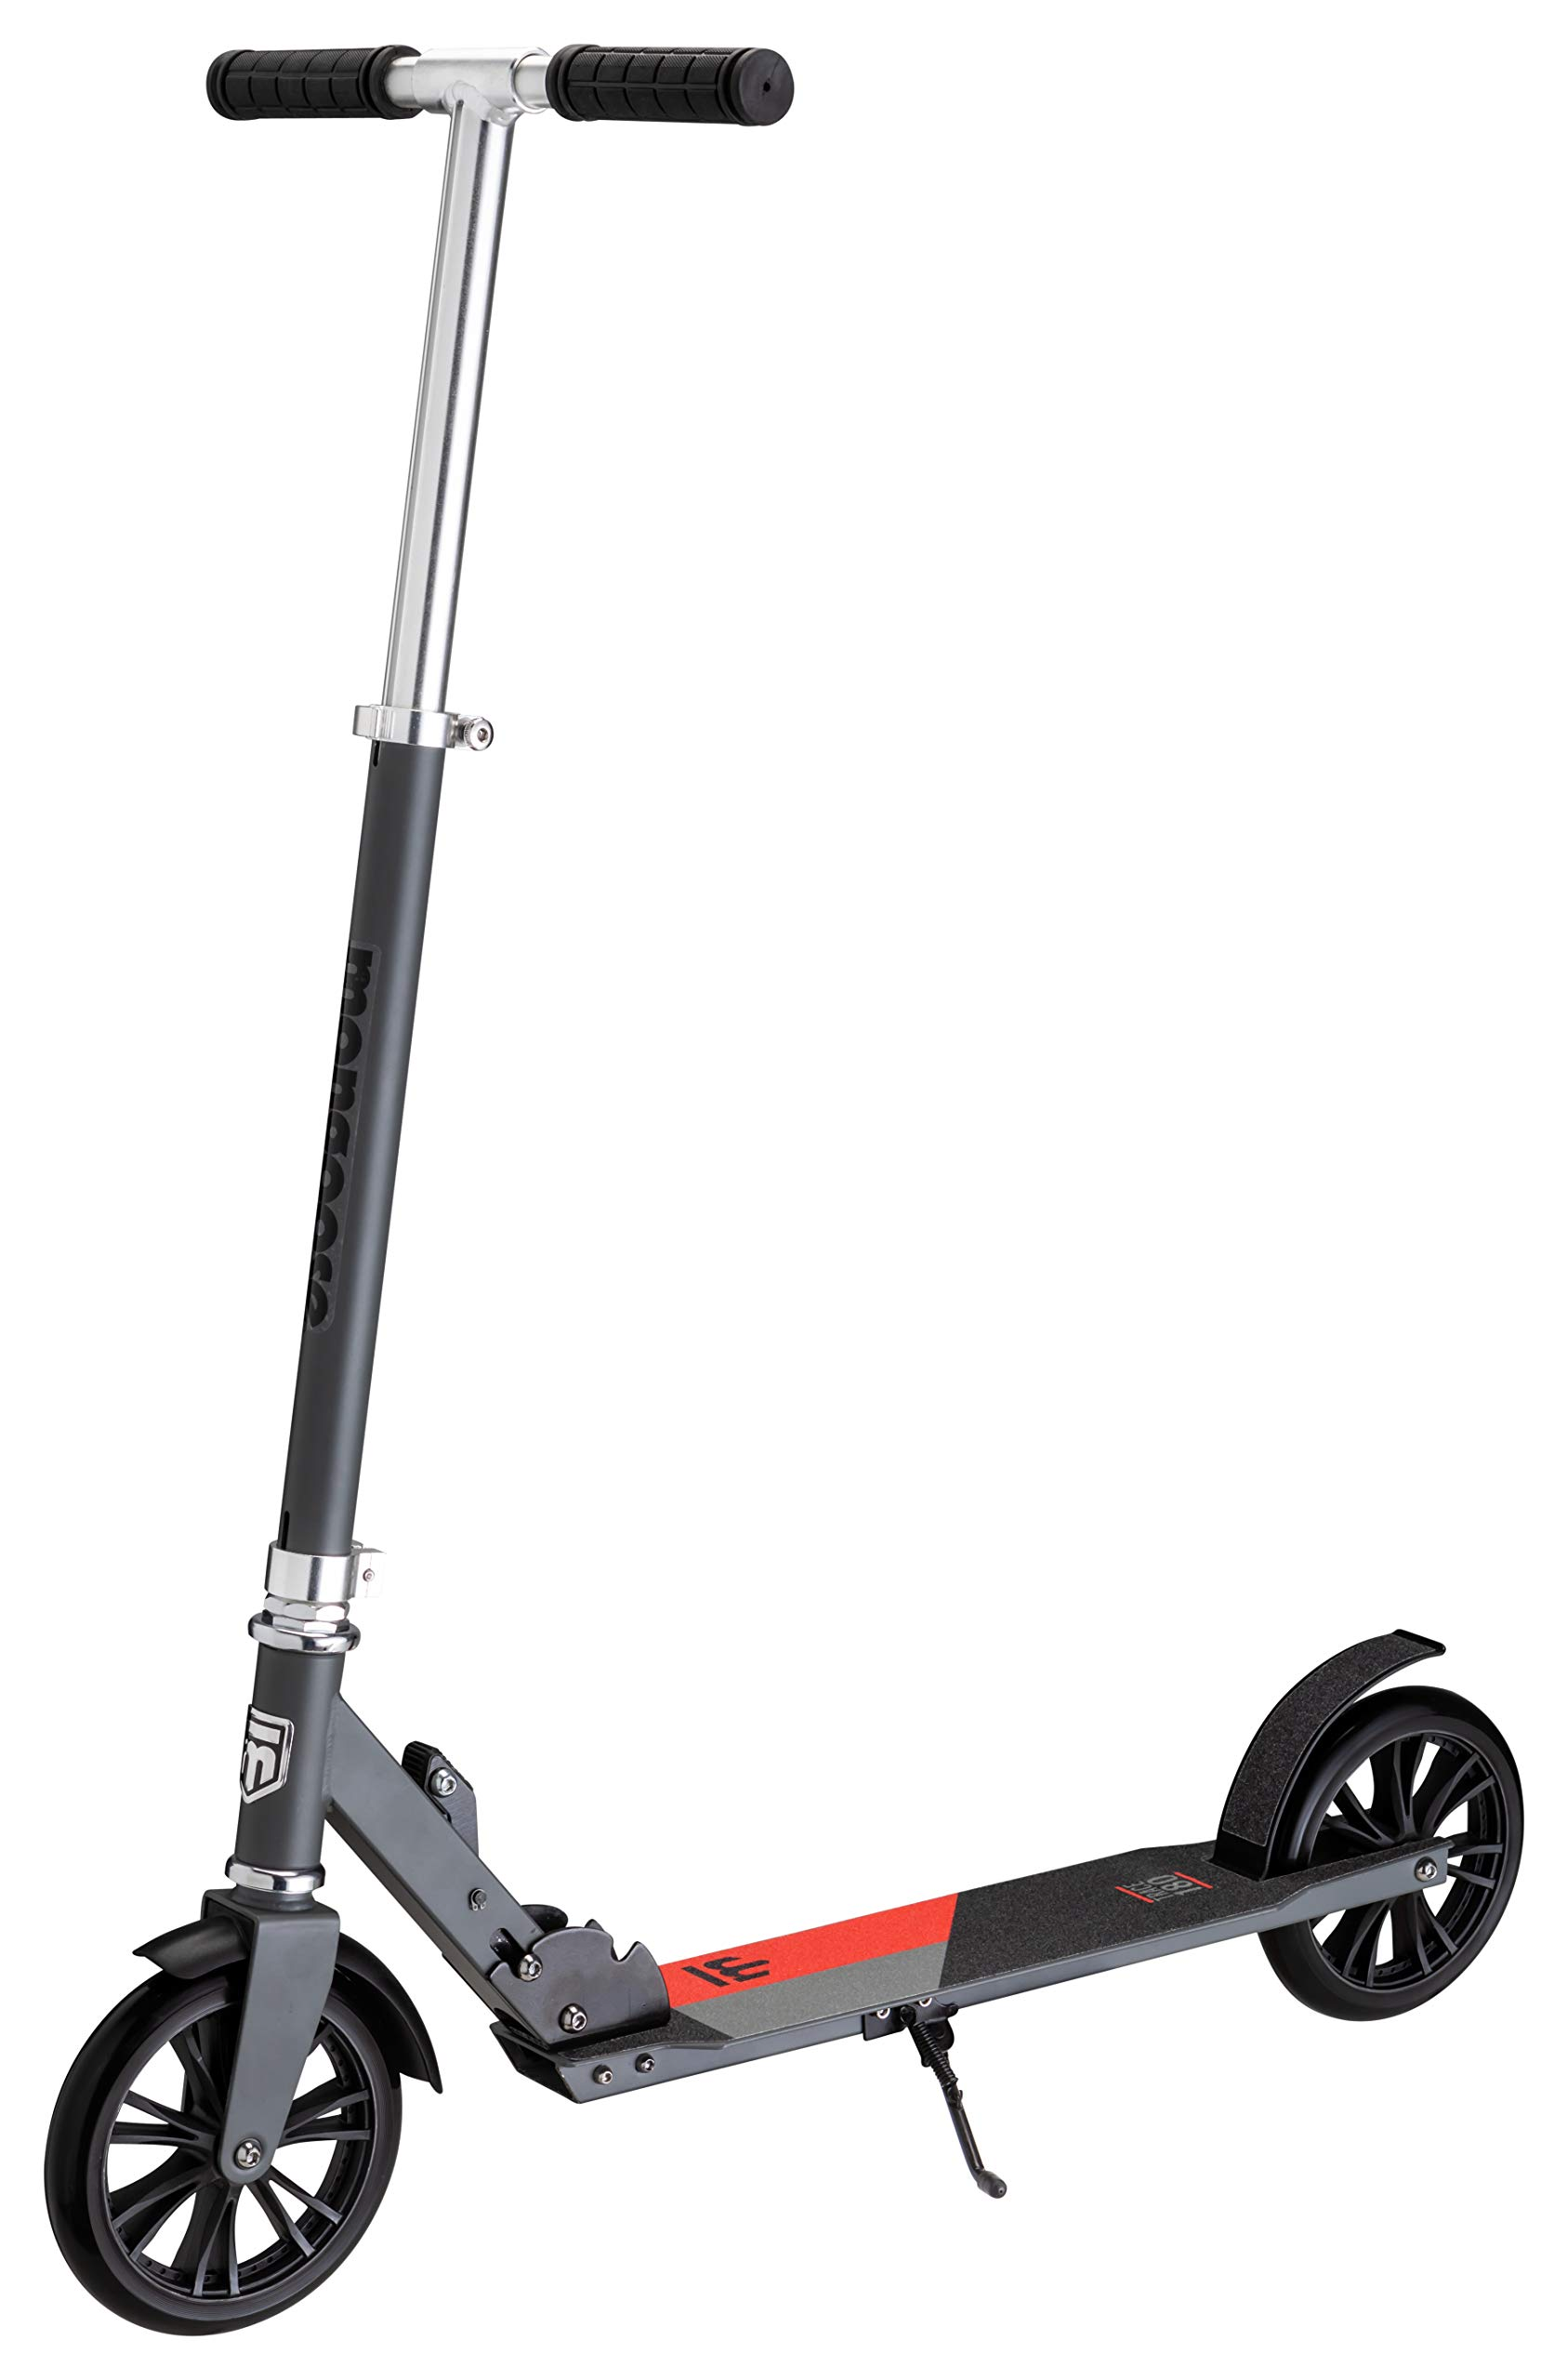 Mongoose Trace 180 Foldable Kick Scooter, Featuring Quick-Release Adjustable Height Handlebars with 180mm Wheels, Grey/Red by Mongoose